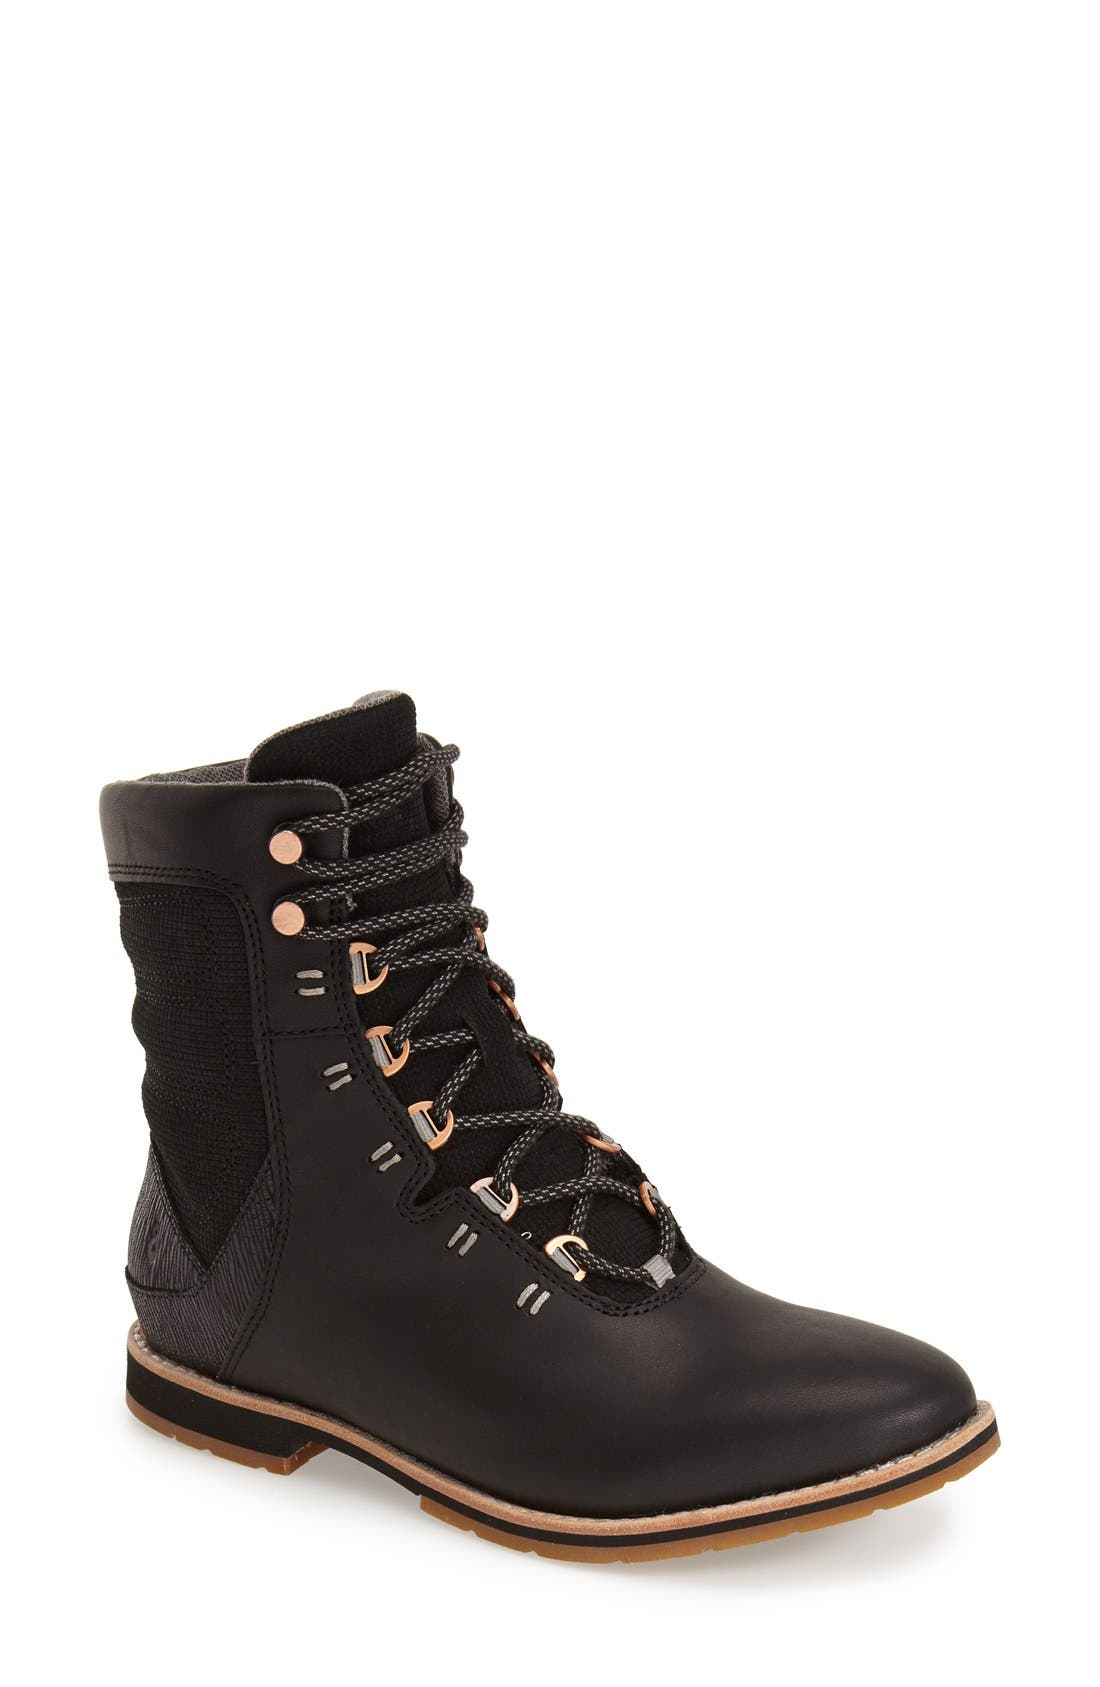 Main Image - Ahnu 'Chenery' Water Resistant Boot (Women)